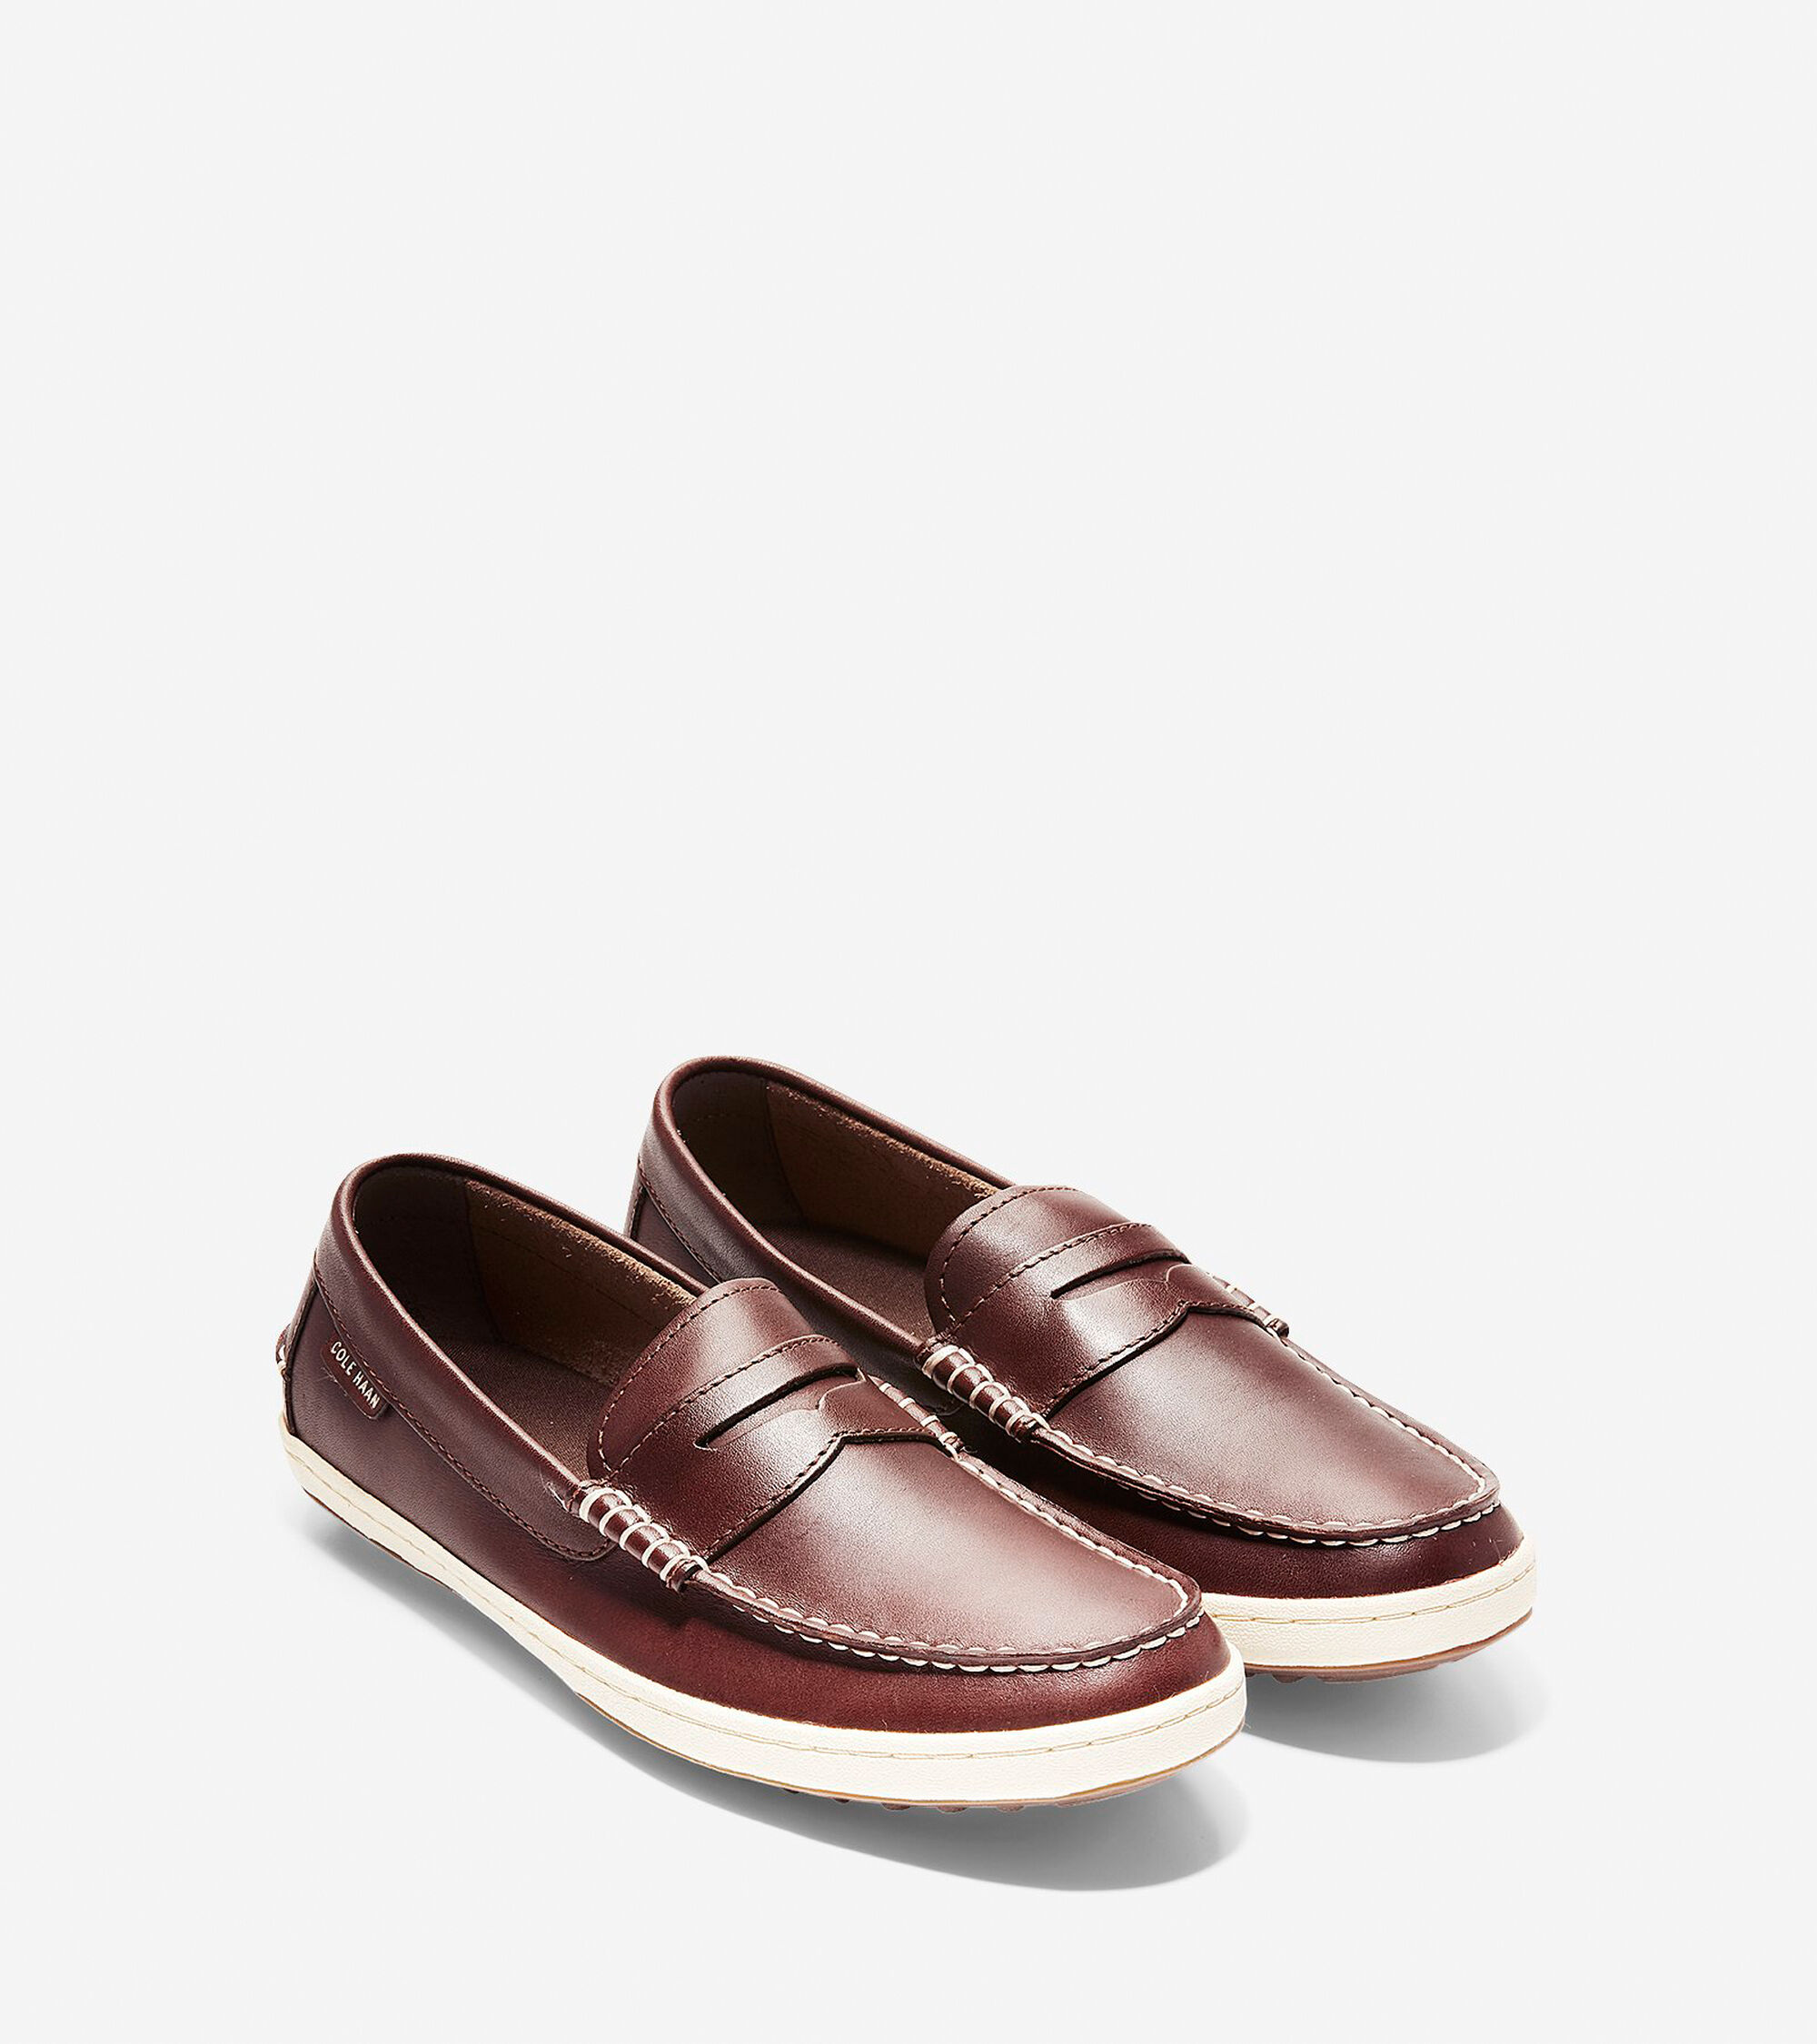 bbc16b6663d ... Men s Pinch Weekender Roadtrip Penny Loafer  Men s Pinch Weekender  Roadtrip Penny Loafer.  COLEHAAN